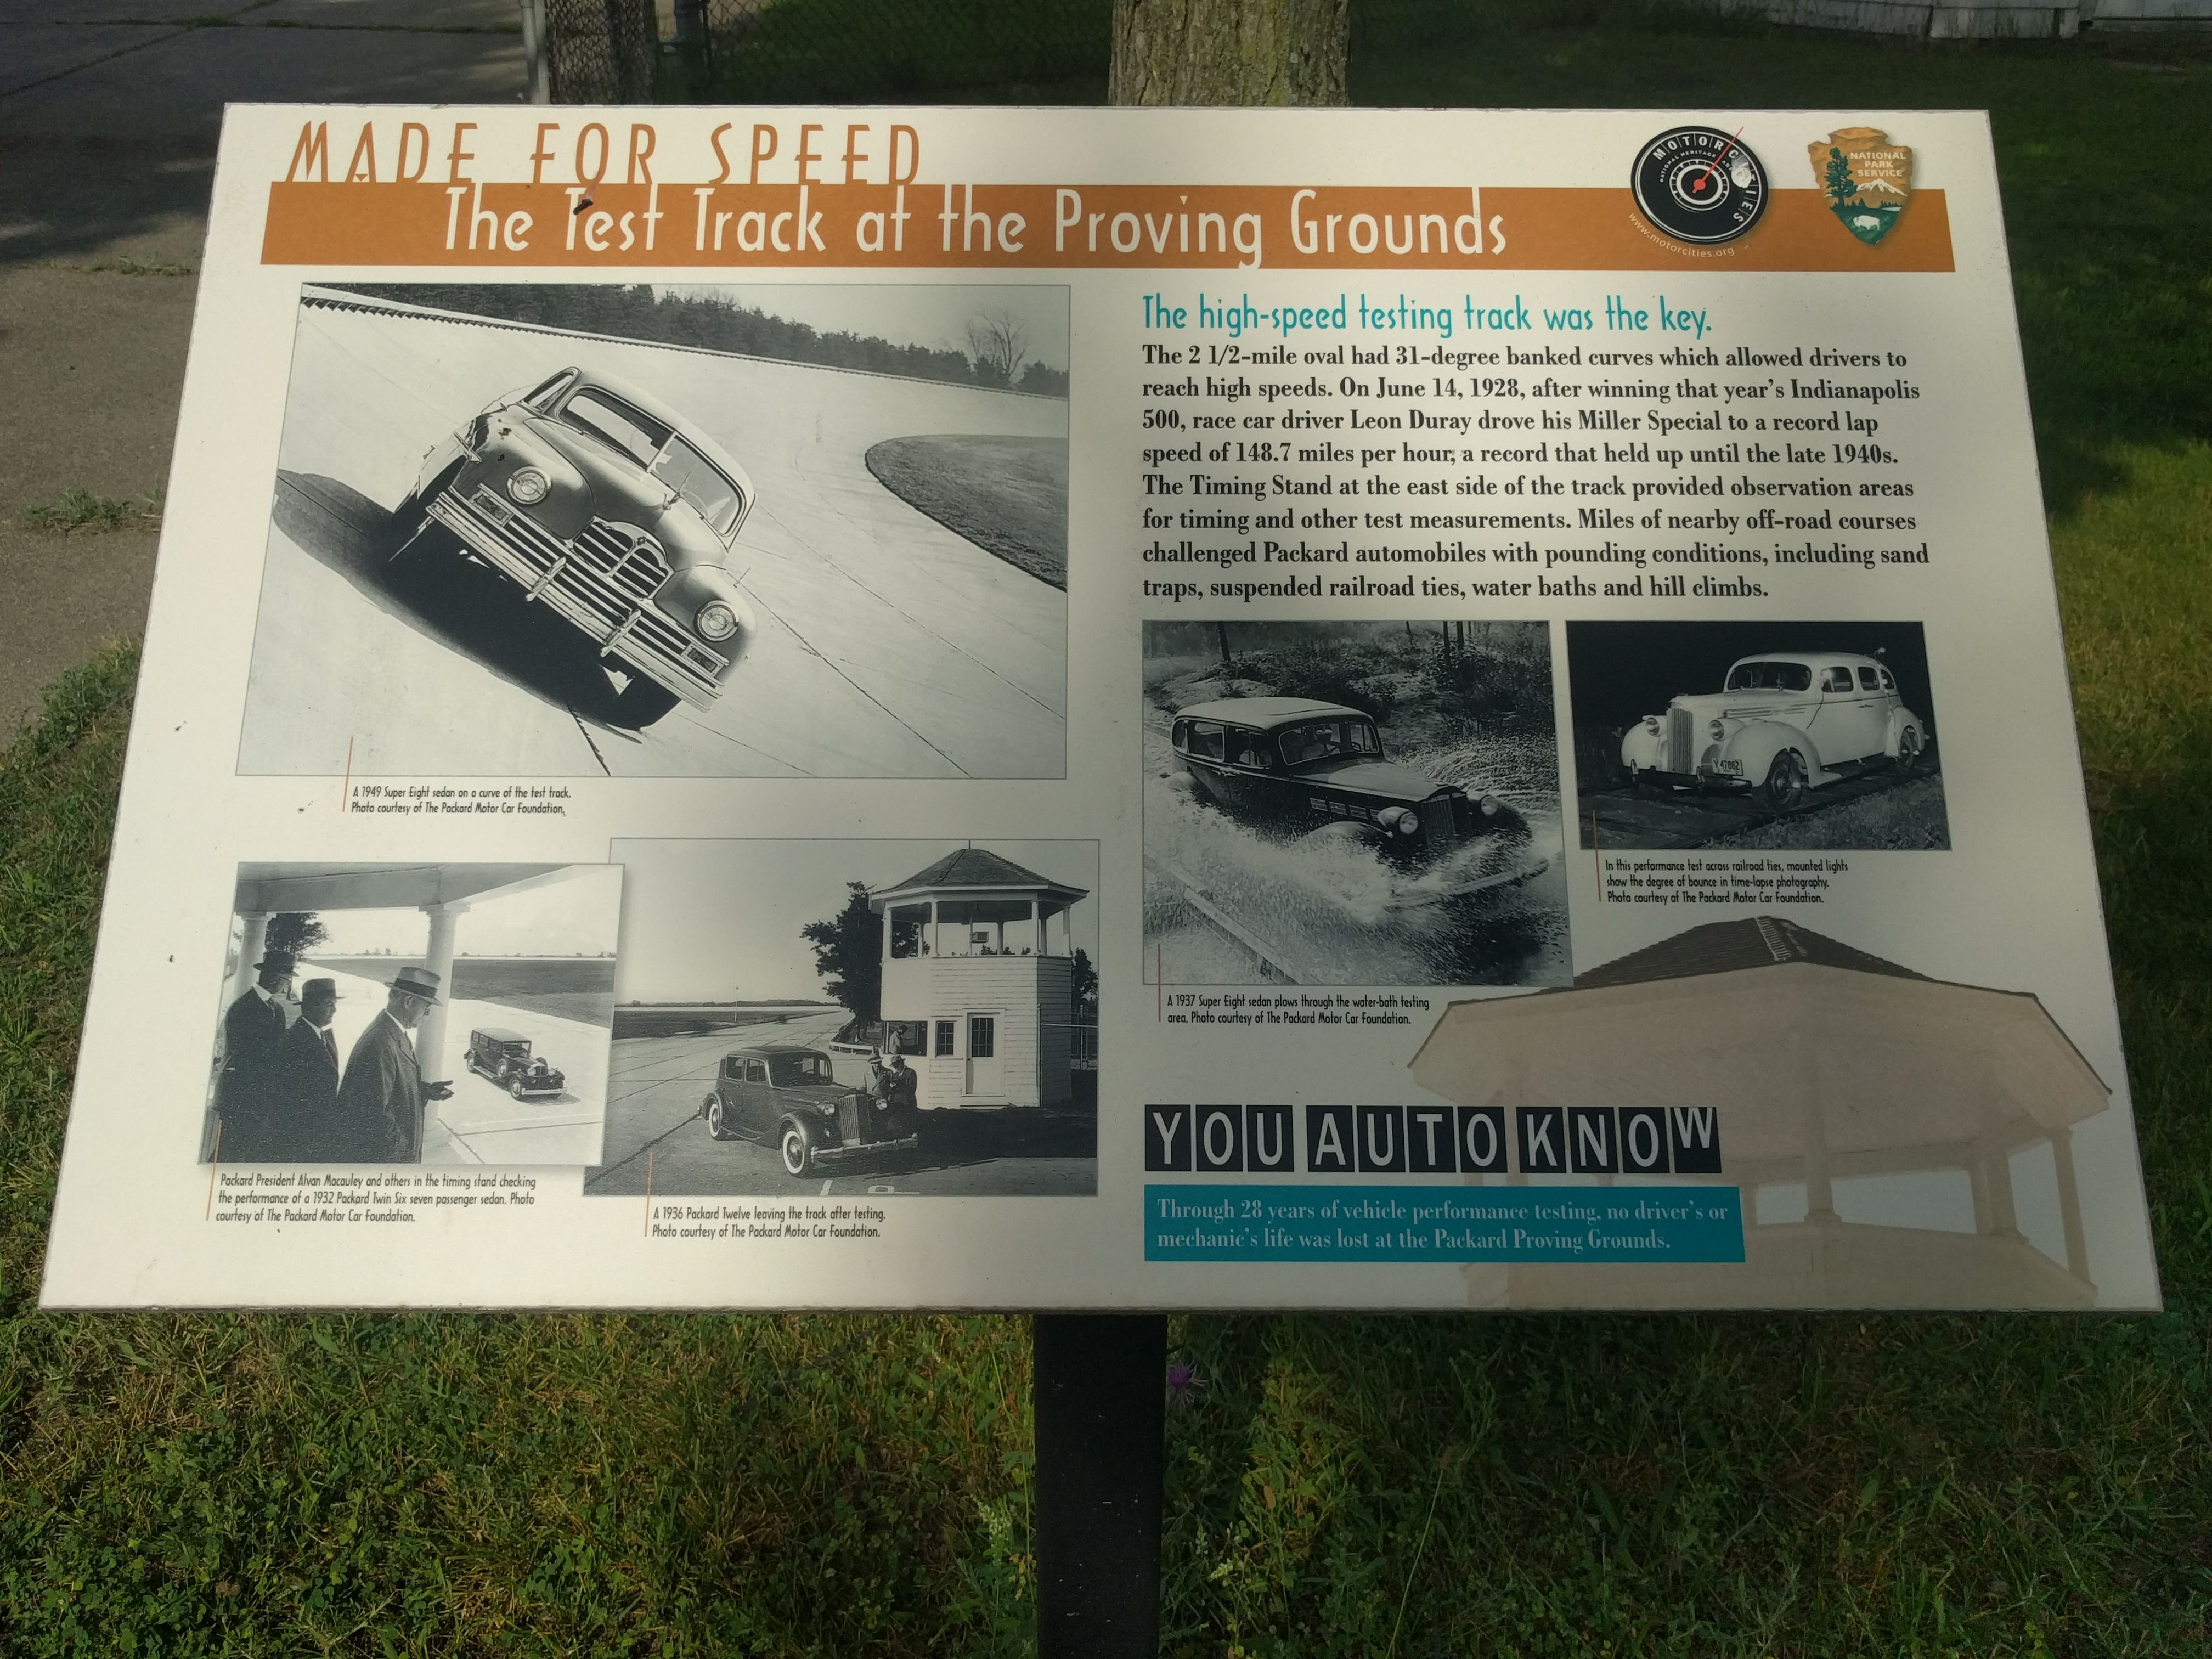 Made for Speed: The Test Track at the Proving Grounds Marker